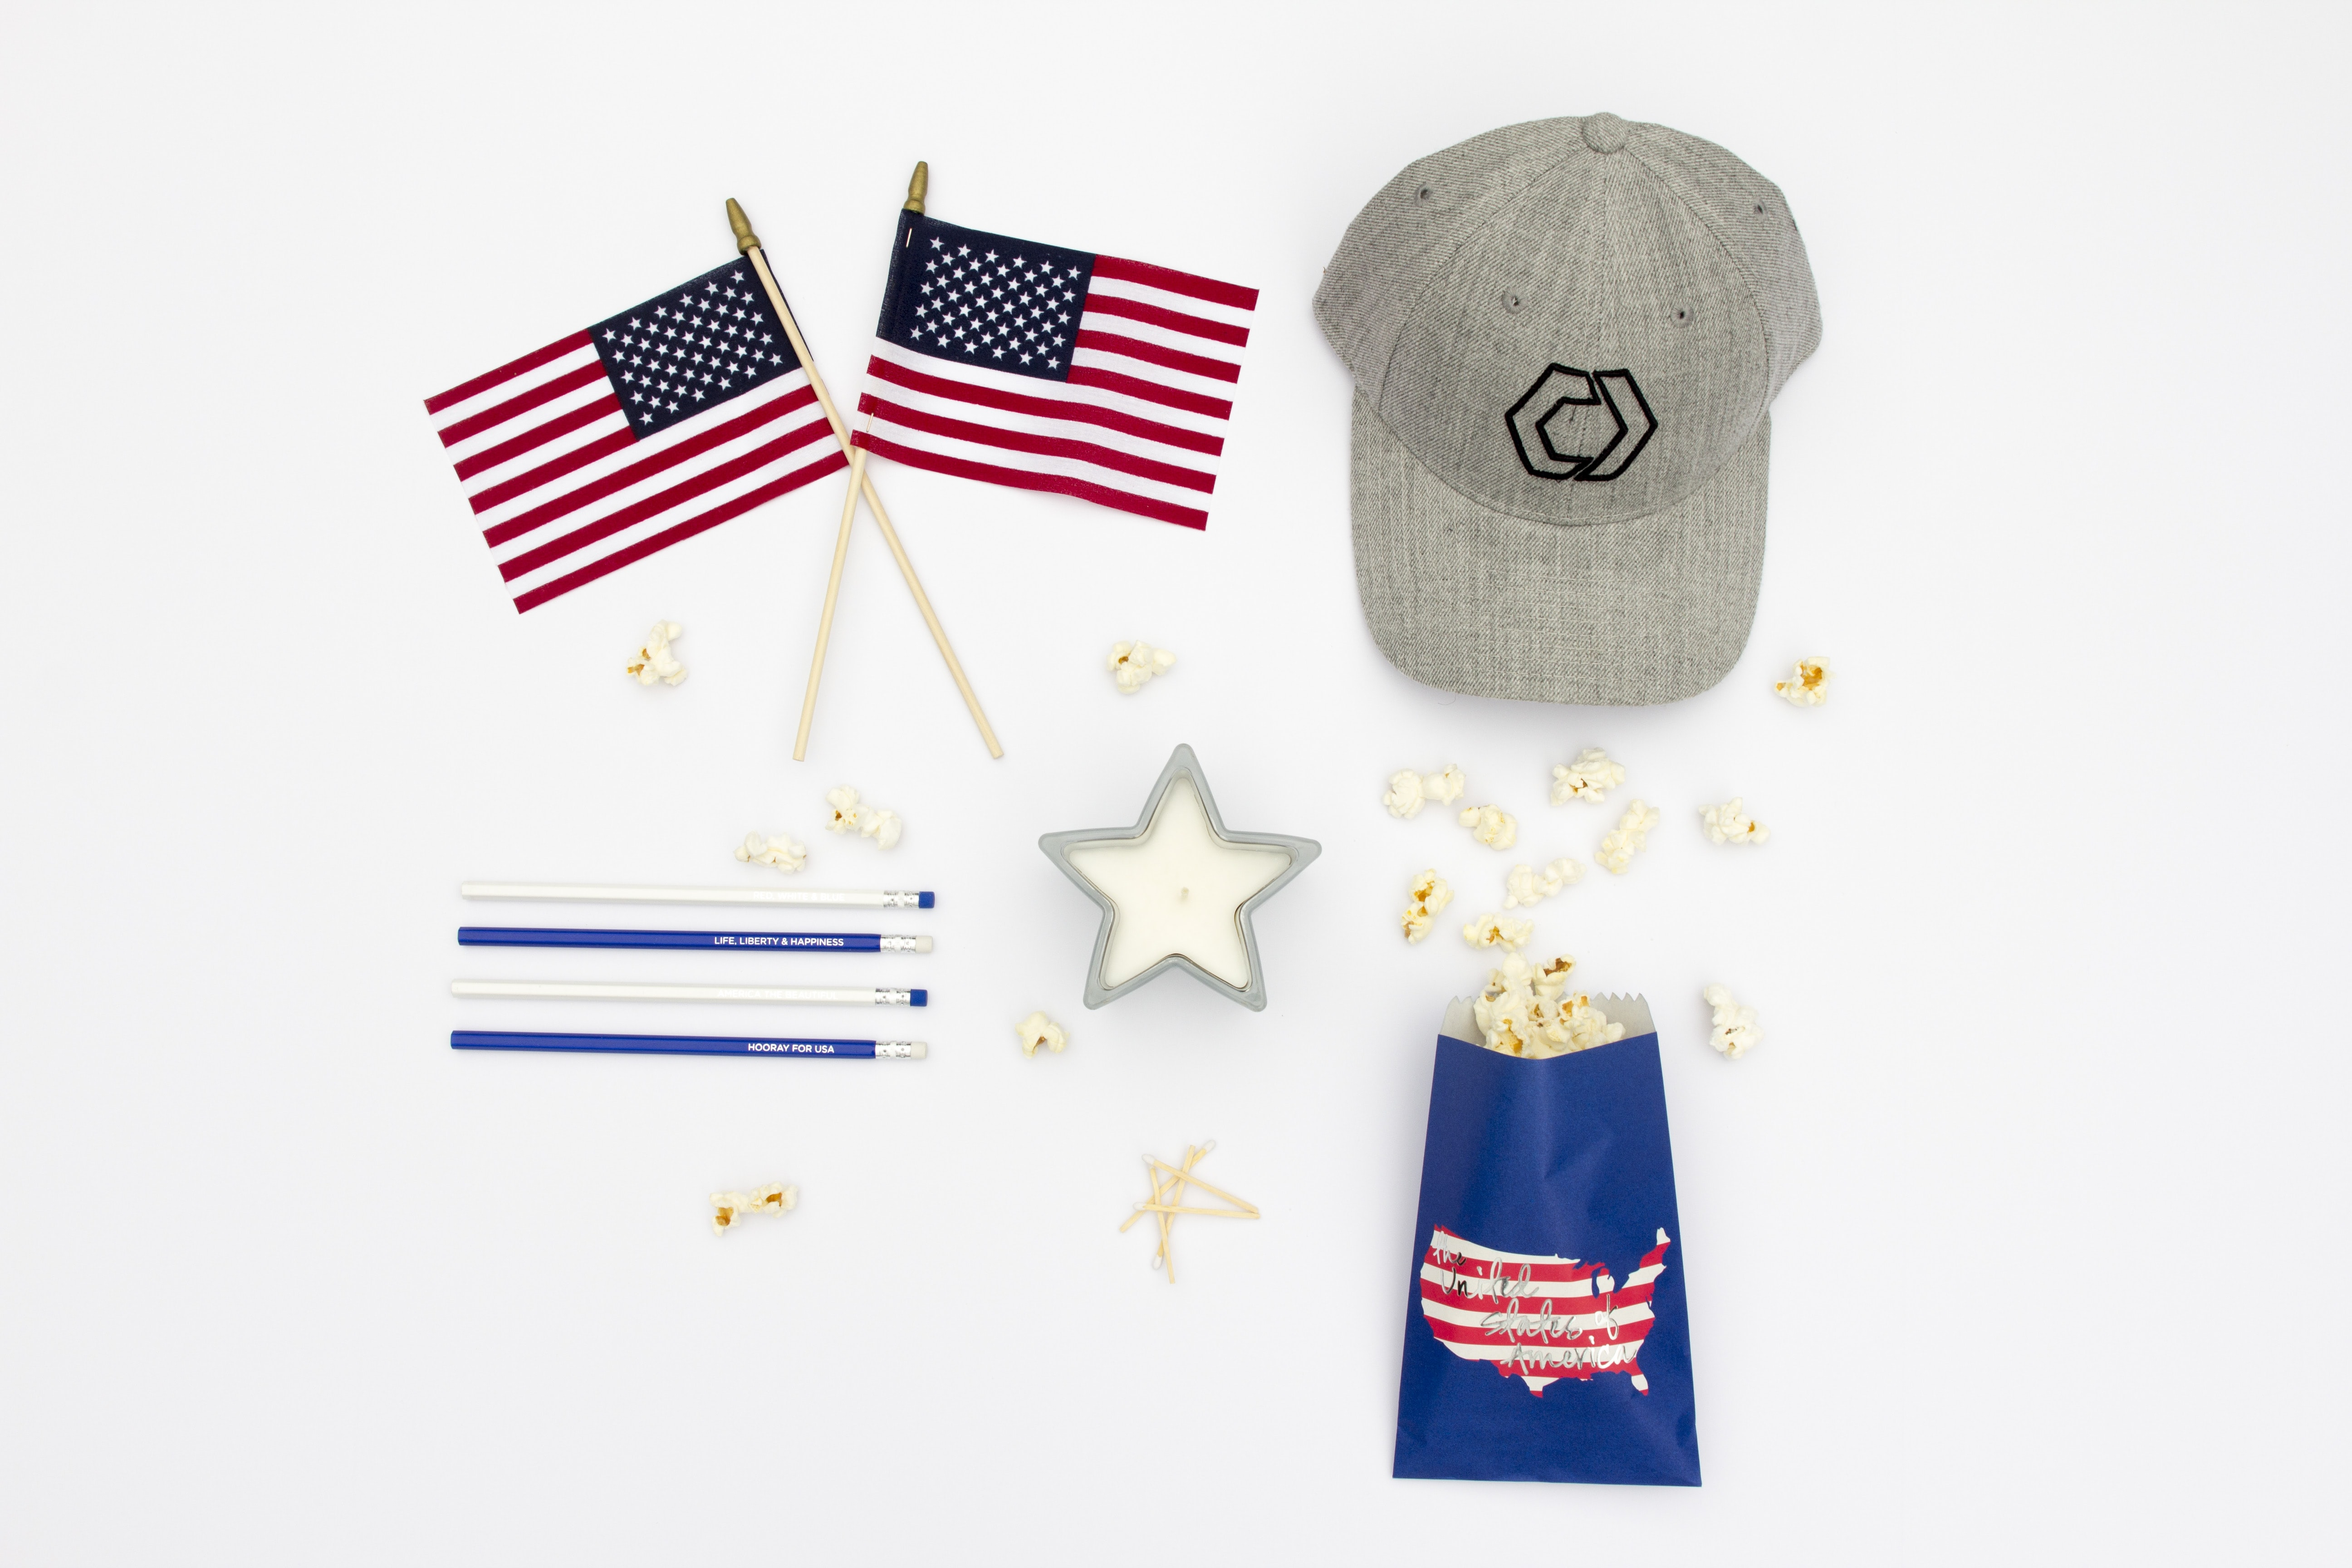 Red, white, and blue Americana gear on a white surface: two small American flags, a gray baseball hat, pencils, a star candle, and popcorn